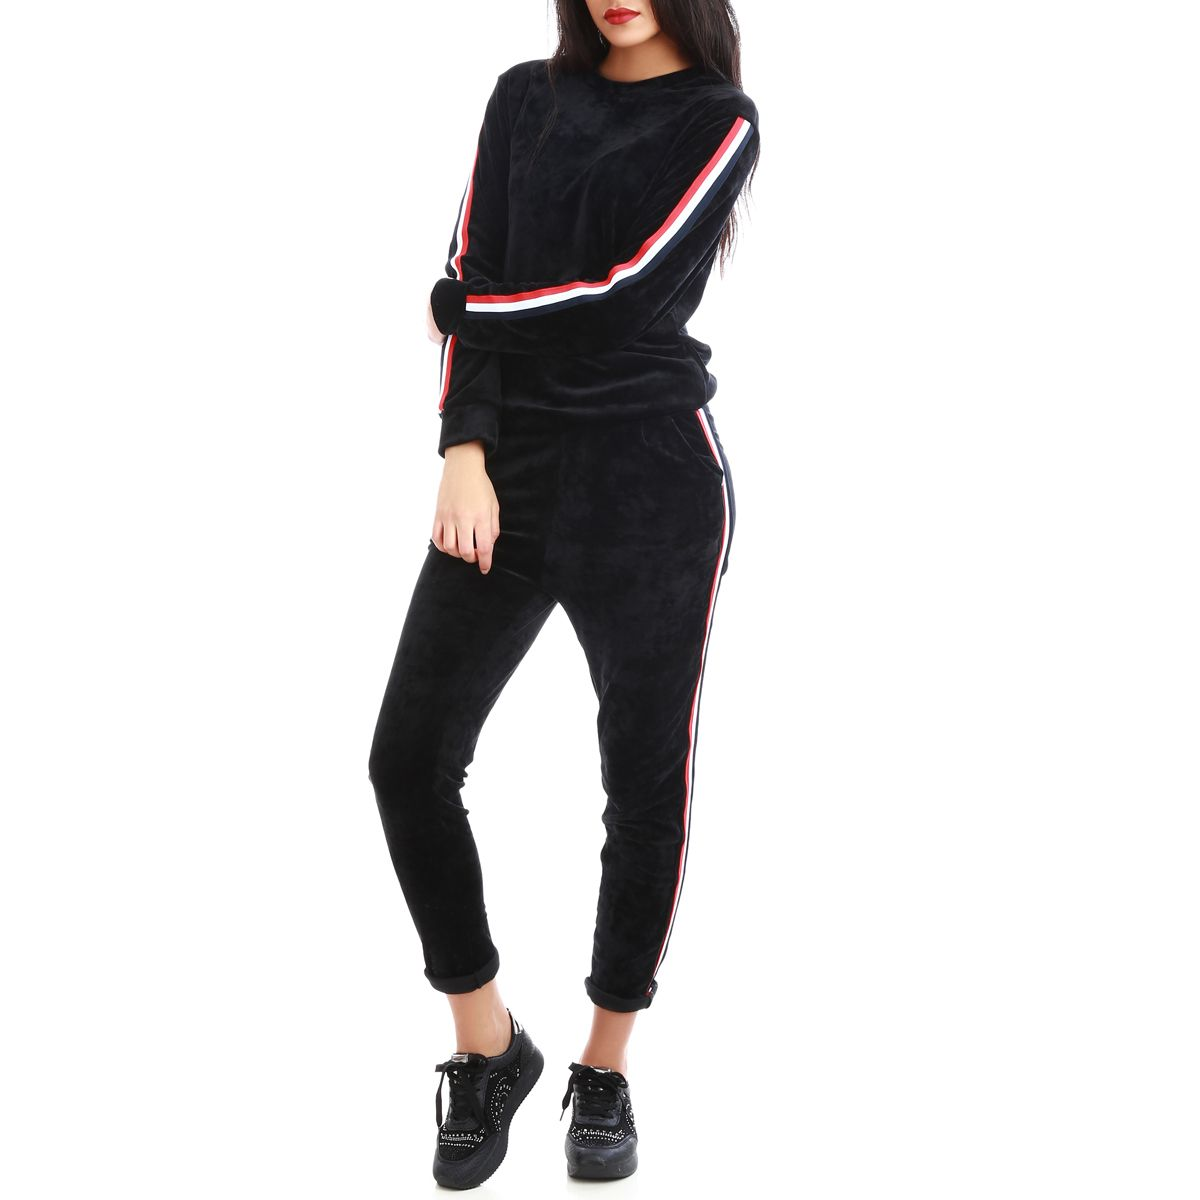 ensemble sweat et pantalon de jogging noir bandes tricolore femme pas cher la modeuse. Black Bedroom Furniture Sets. Home Design Ideas